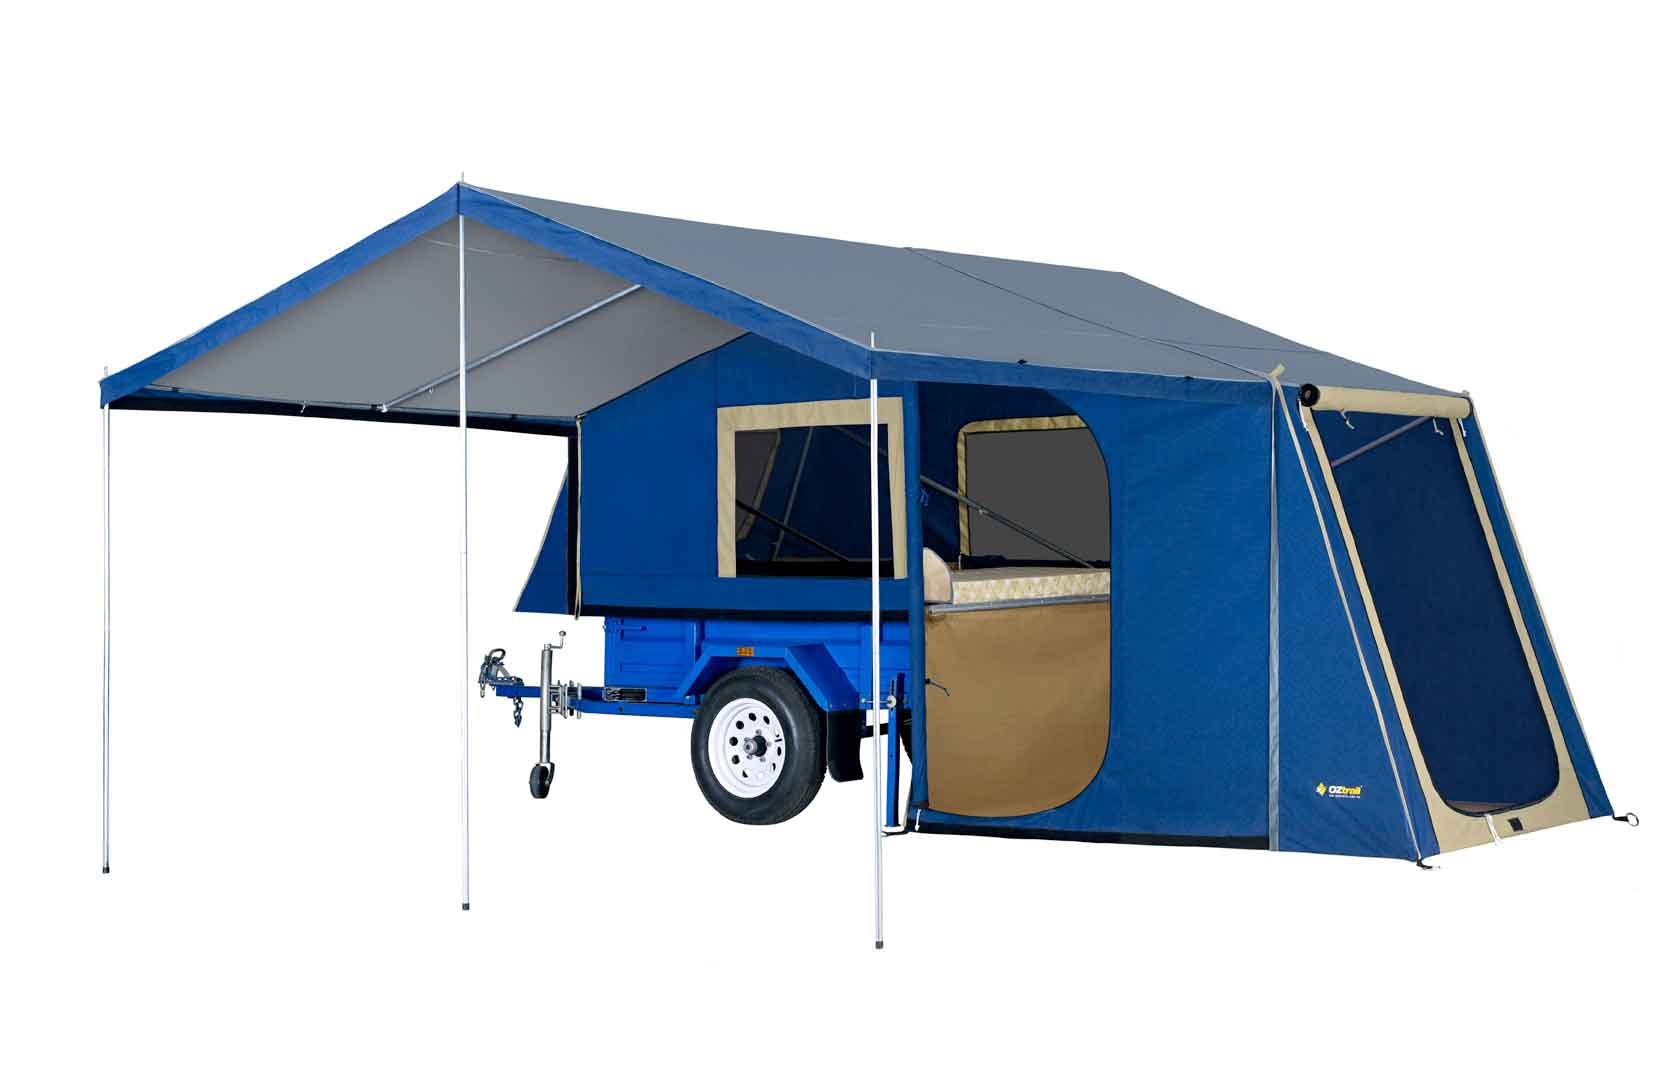 Elegant It Also Come With A Foldable Tent That Provide You The Liberty To Spread It  Numerous Companies Currently In The Market Supply A Wide Selection Of Camper Trailers For Sale In Adelaide These Are Completely Equipped For Occupancy And